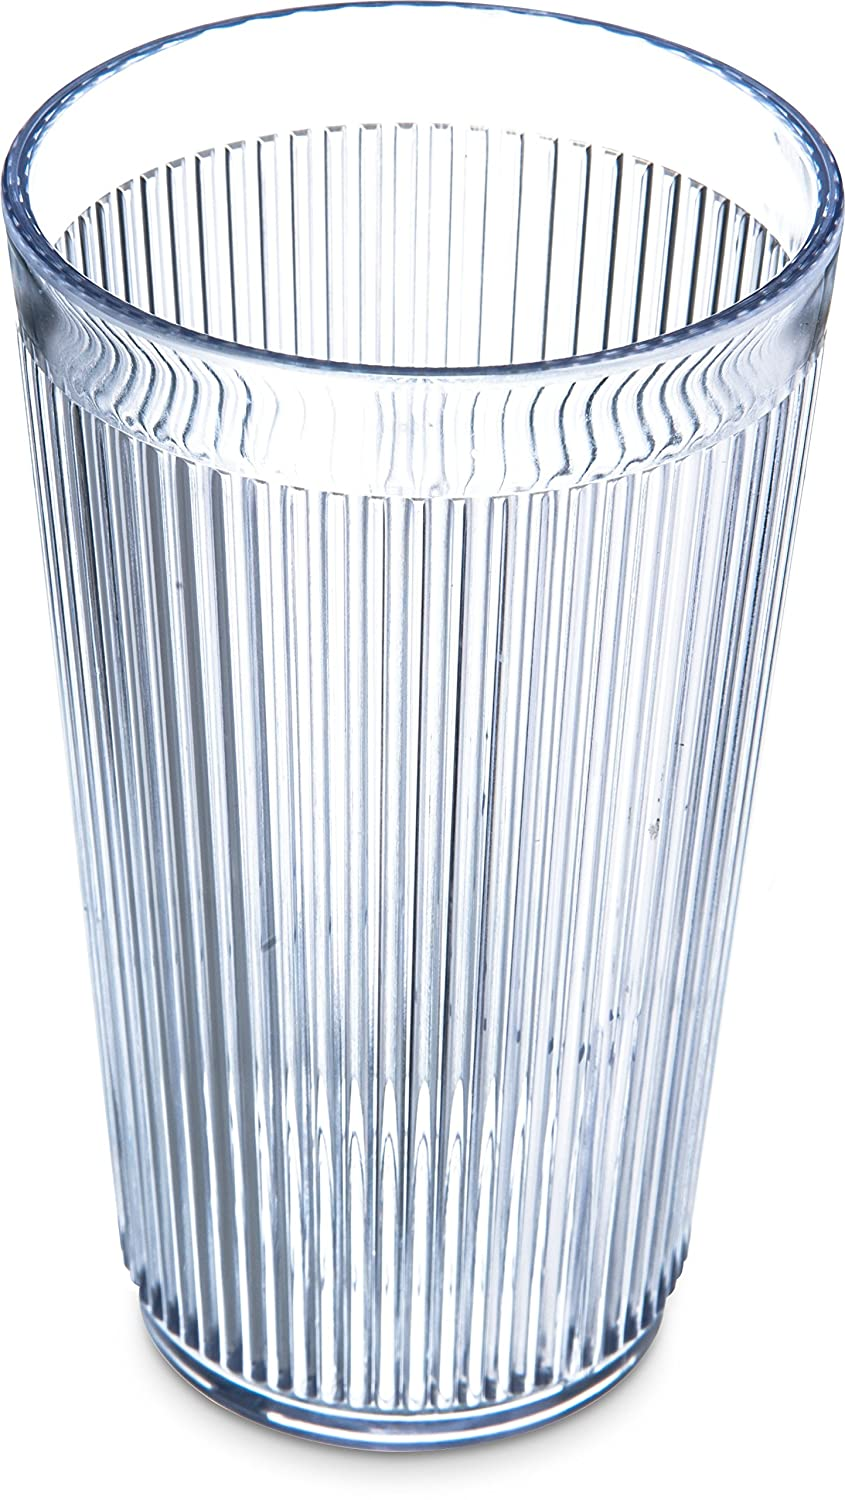 Carlisle 401207 Crystalon Stack-All Restaurant SAN Plastic Tumbler/Cup, 12.3 oz, Clear (Pack of 48)